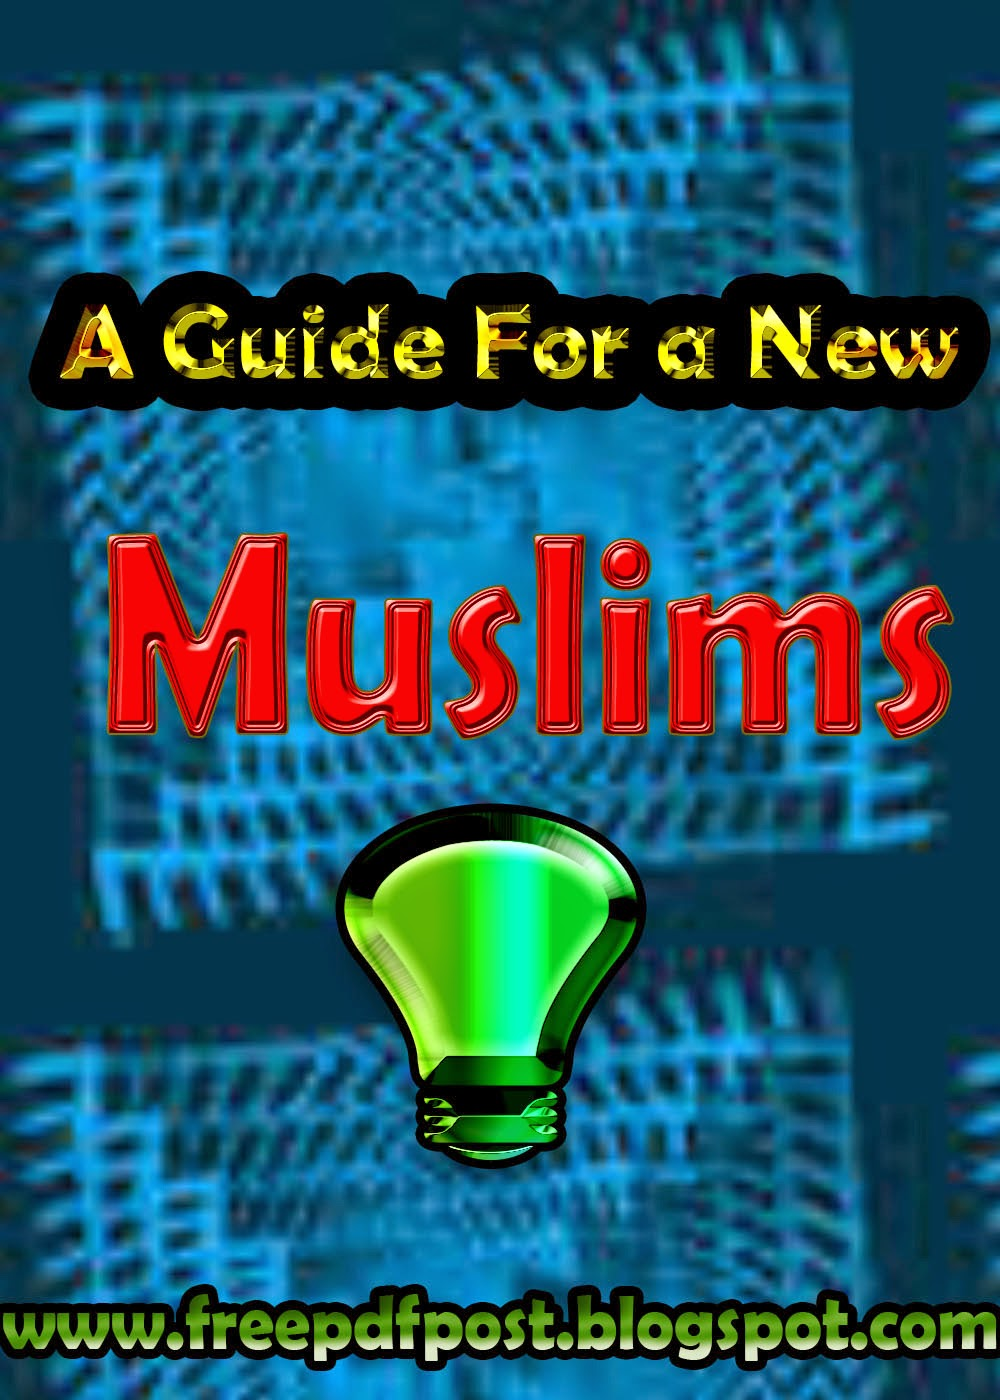 https://ia601509.us.archive.org/34/items/a_guide_for_the_new_muslim/a_guide_for_the_new_muslim.pdf